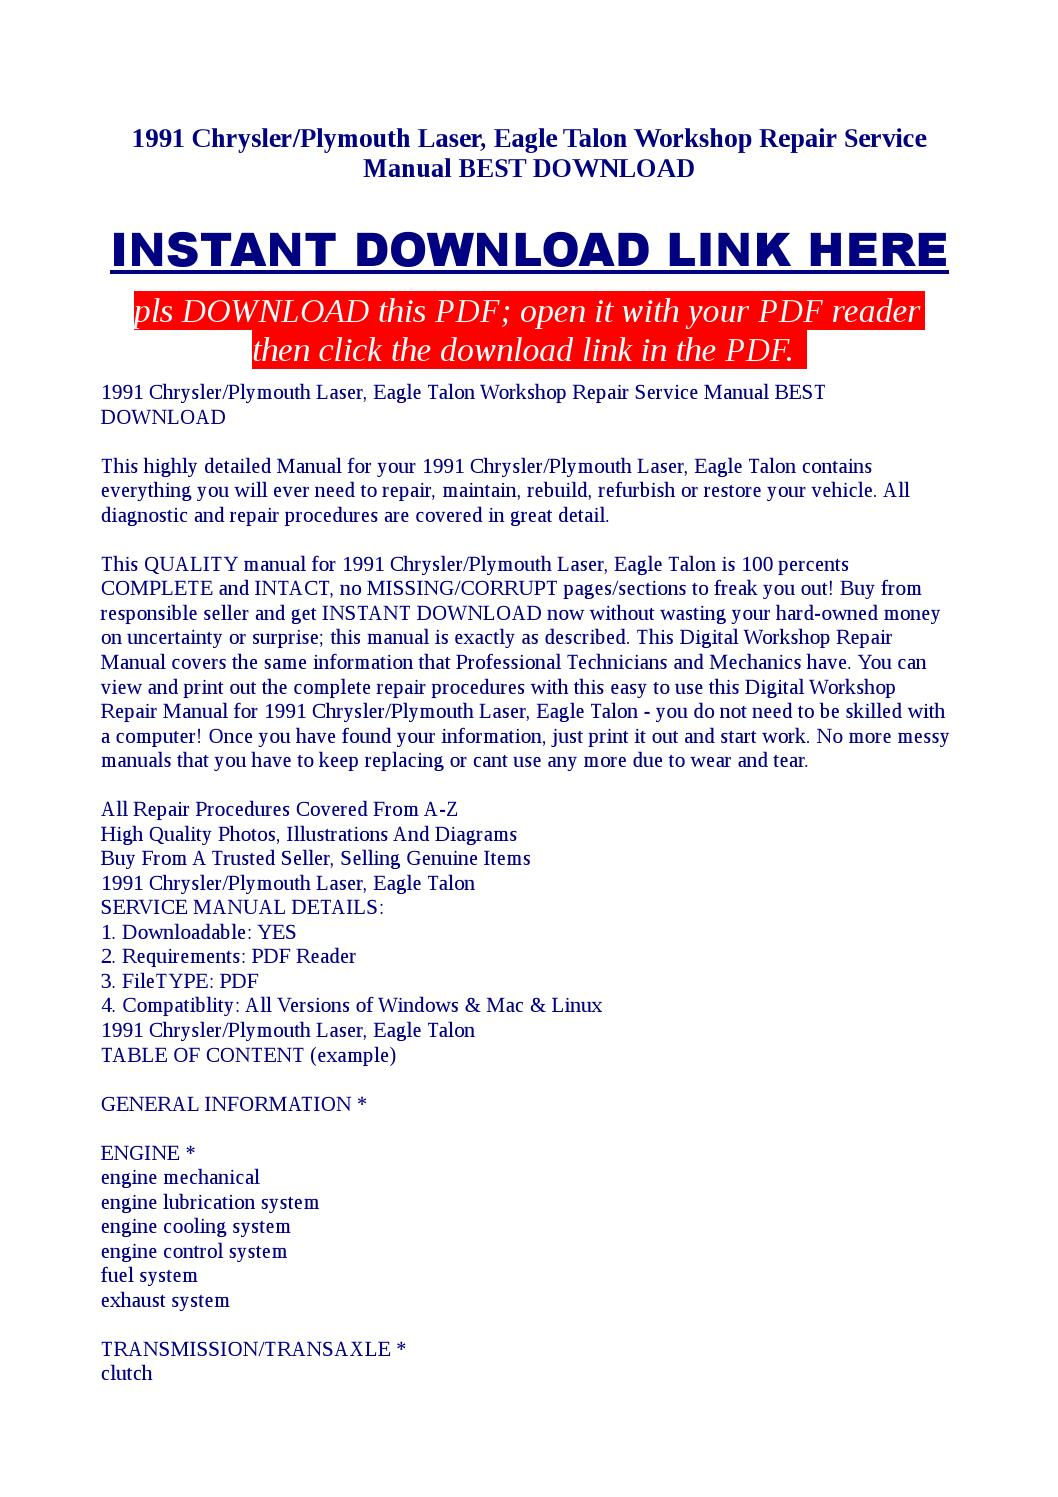 1991 Chrysler Plymouth Laser Eagle Talon Workshop Repair Service 3 Engine Diagram Manual Best Download By Kato Syomo Issuu